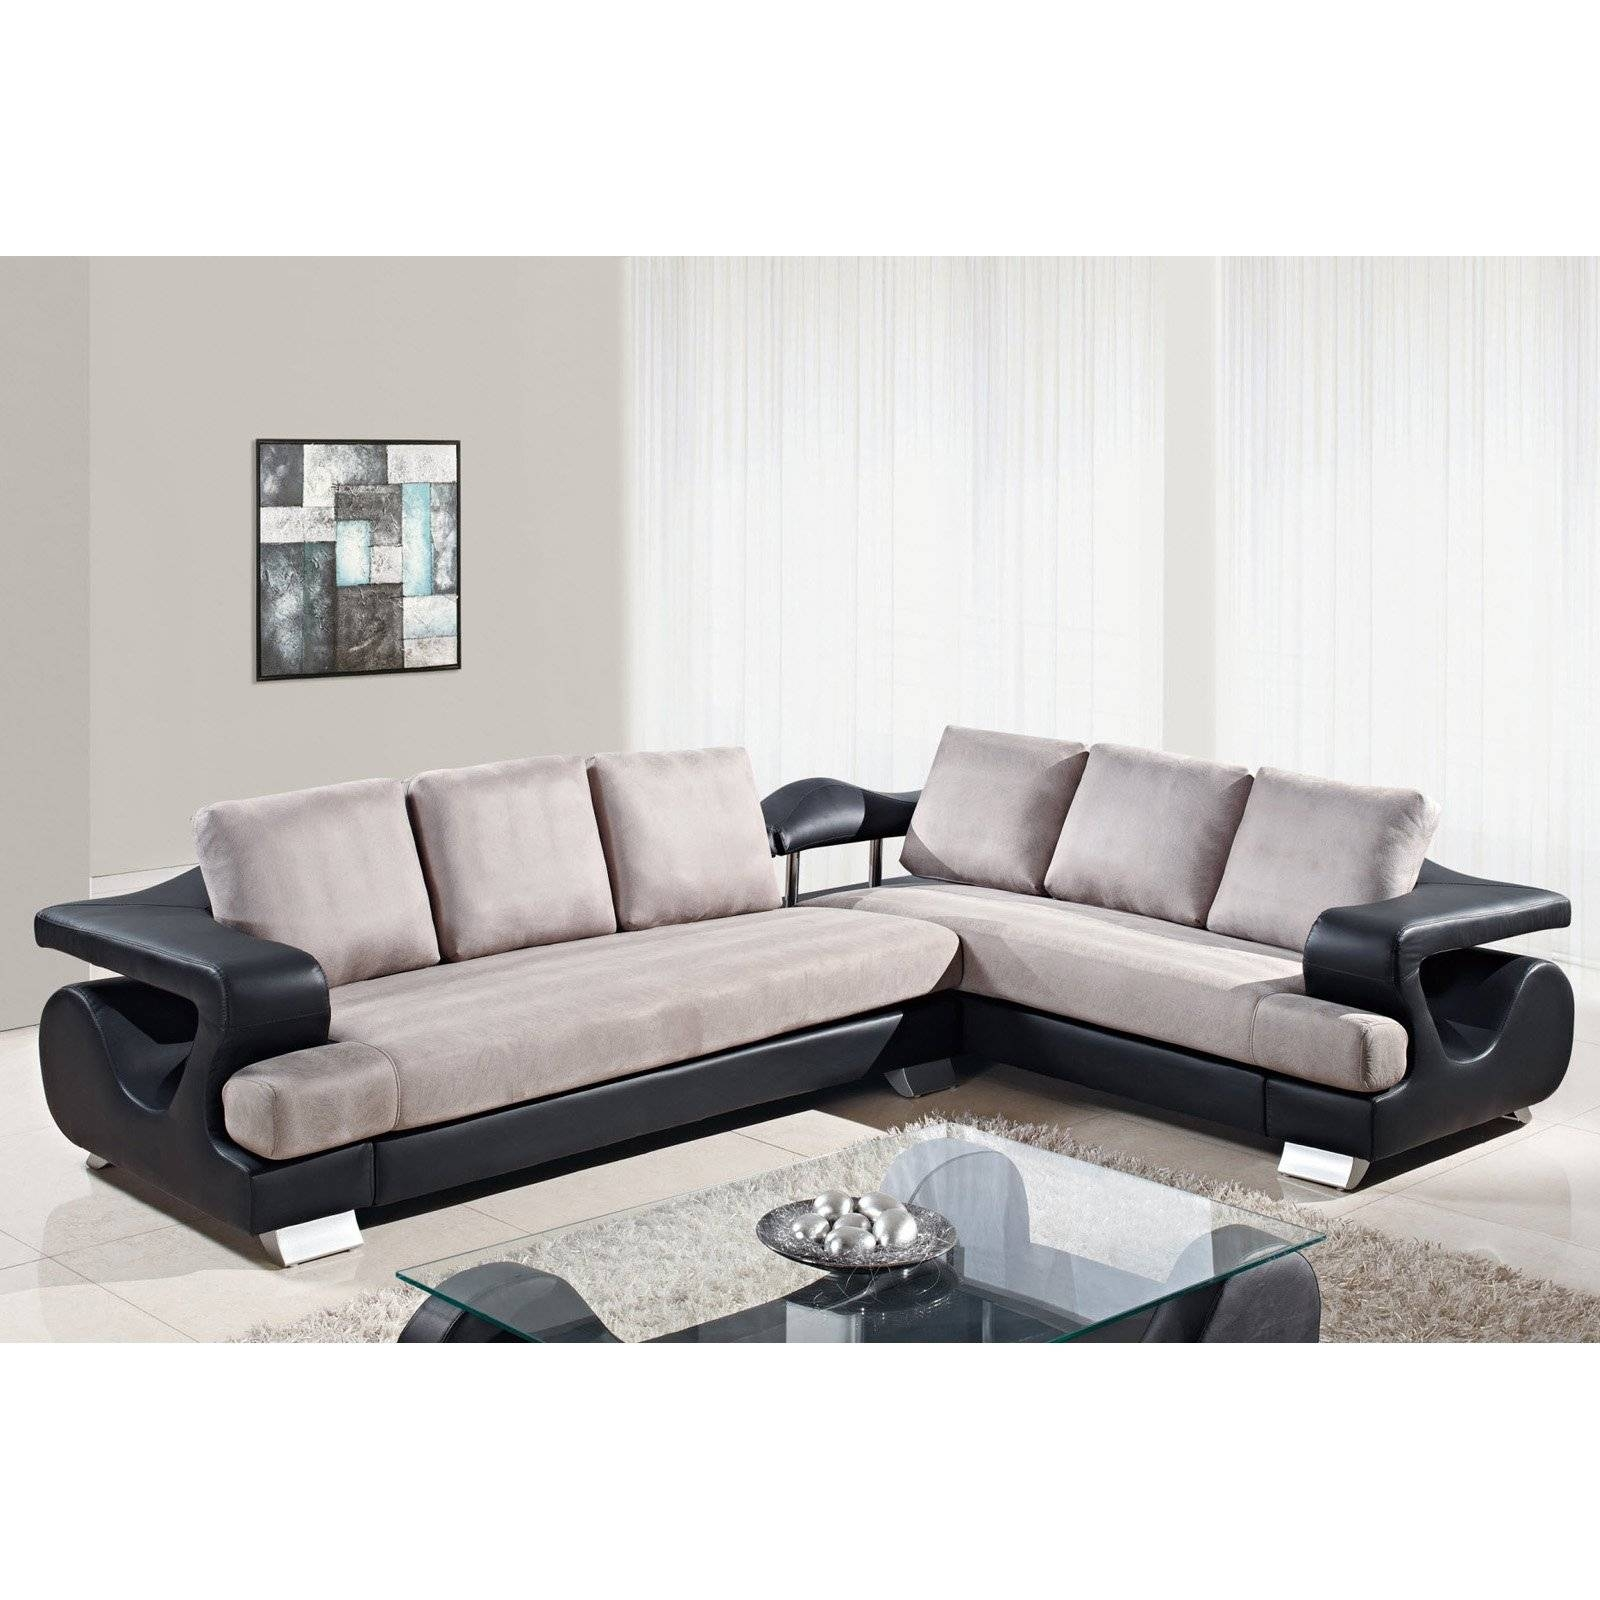 Outstanding Stendmar Sectional Sofa 16 On Bentley Sectional for Bentley Sectional Leather Sofa (Image 23 of 30)